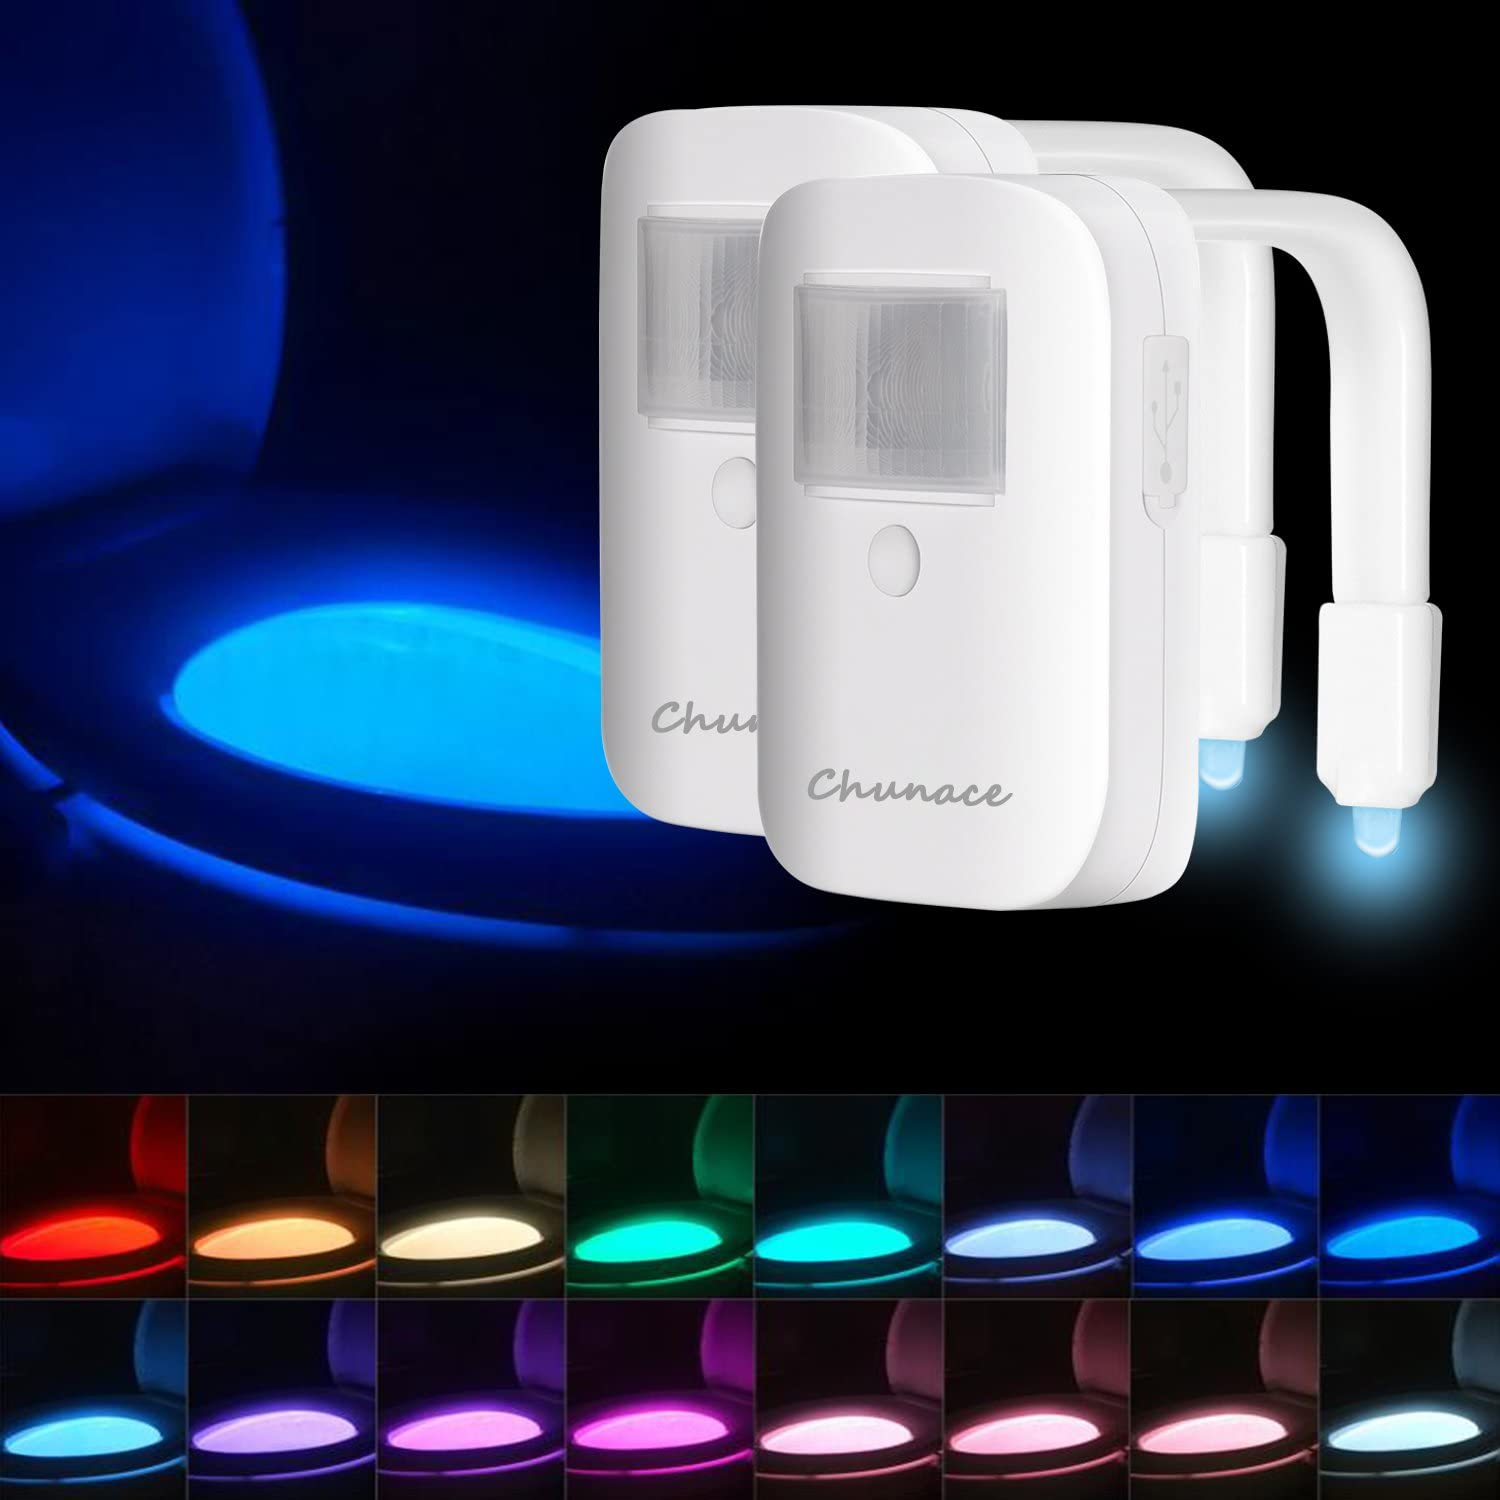 Rechargeable Toilet Bowl Night Lights,16 Colors Motion Detection Cool Fun Nightlights, Funny & Unique Birthday Gift Idea for Dad, Mom, Men, Women & Kids, Best Gag Gadgets 2 Pack